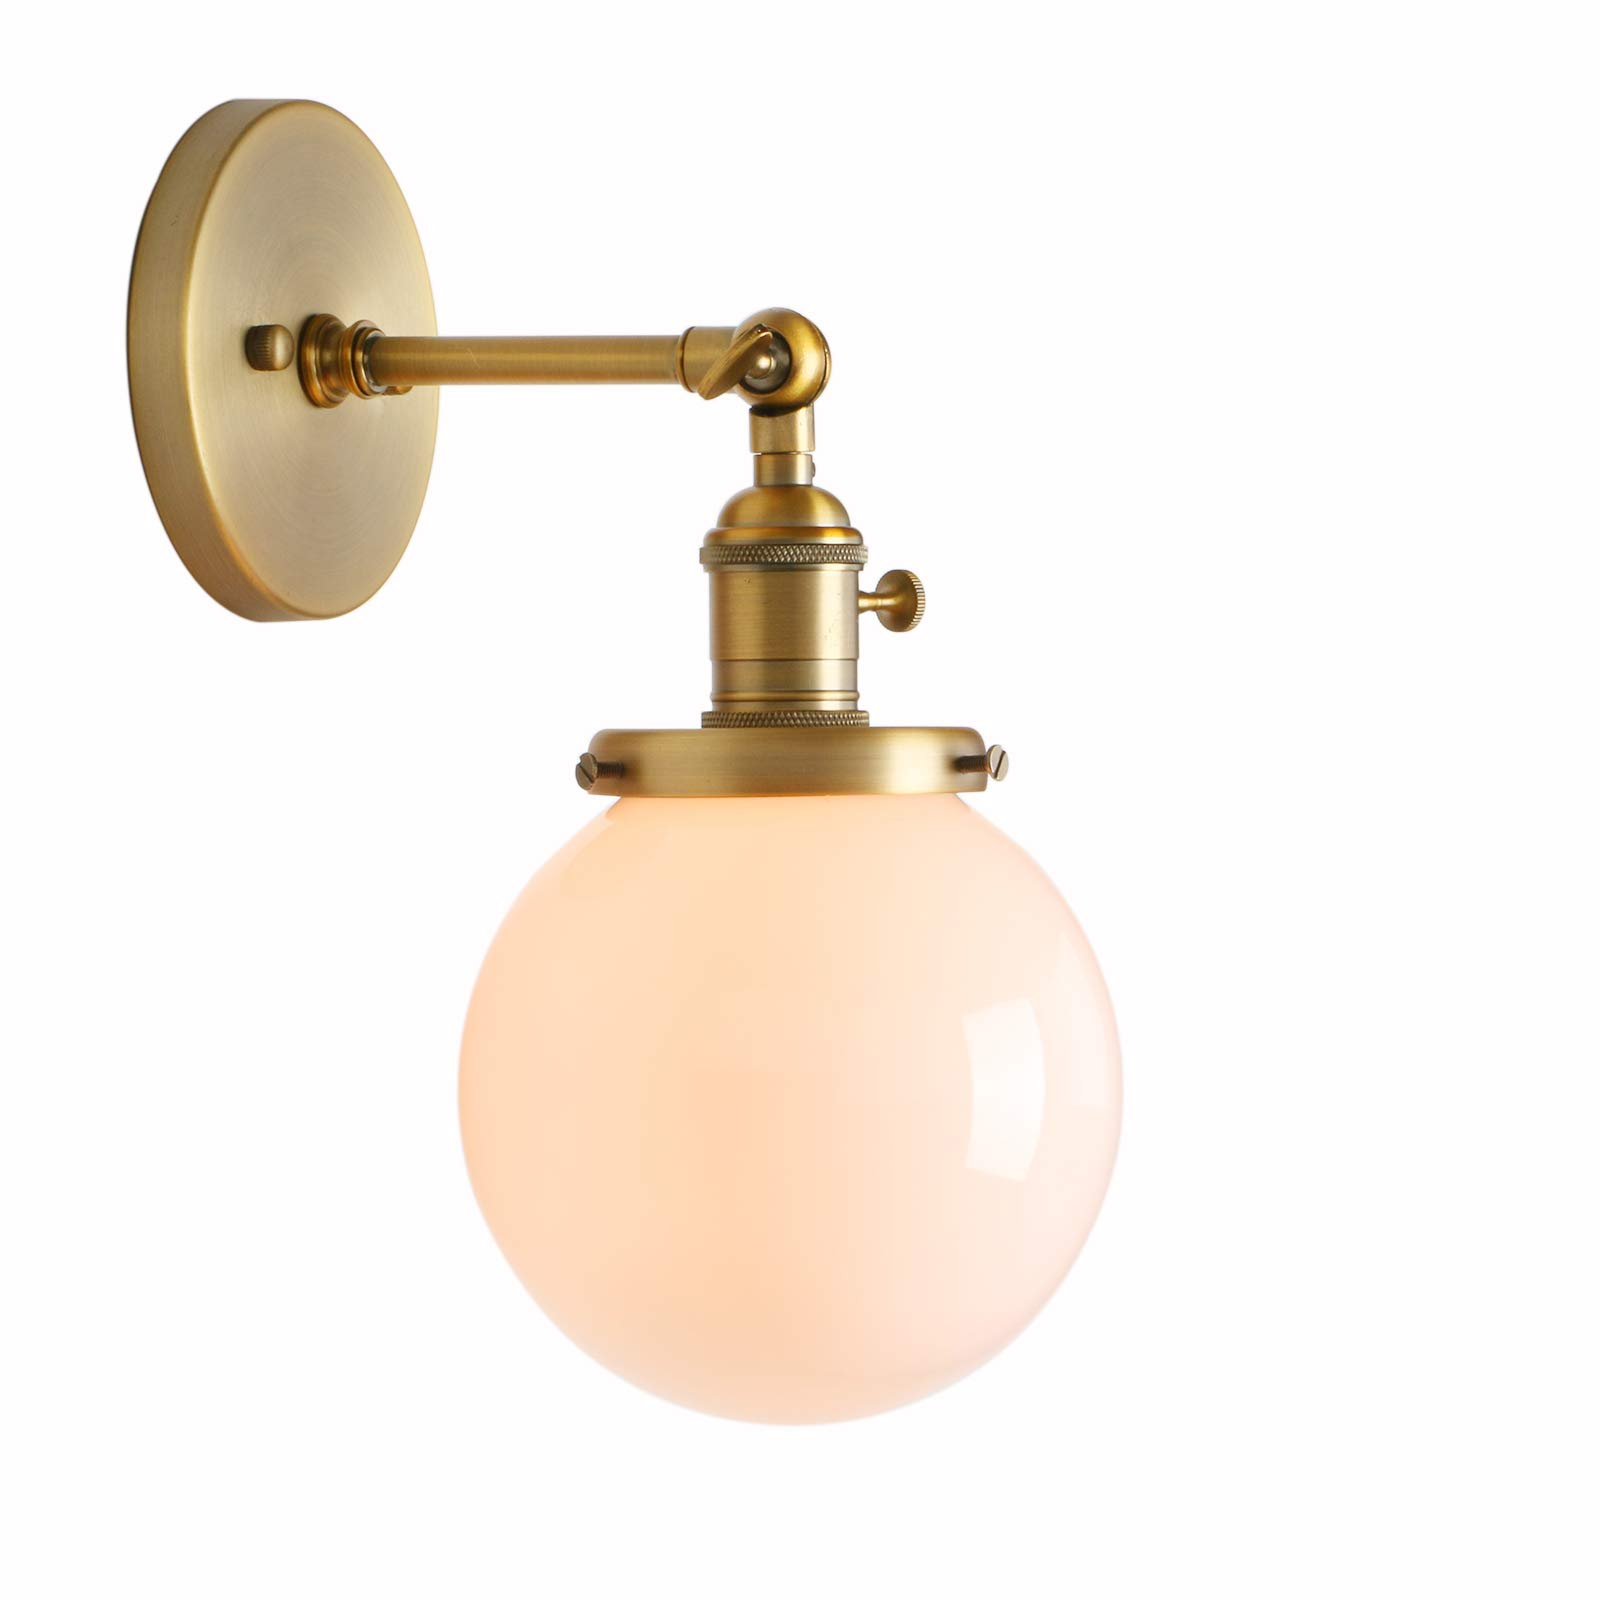 Permo Vintage Industrial Wall Sconce Lighting Fixture with Mini 5.9'' Round Globe Milk White Glass Hand Blown Shade (Anqitue)